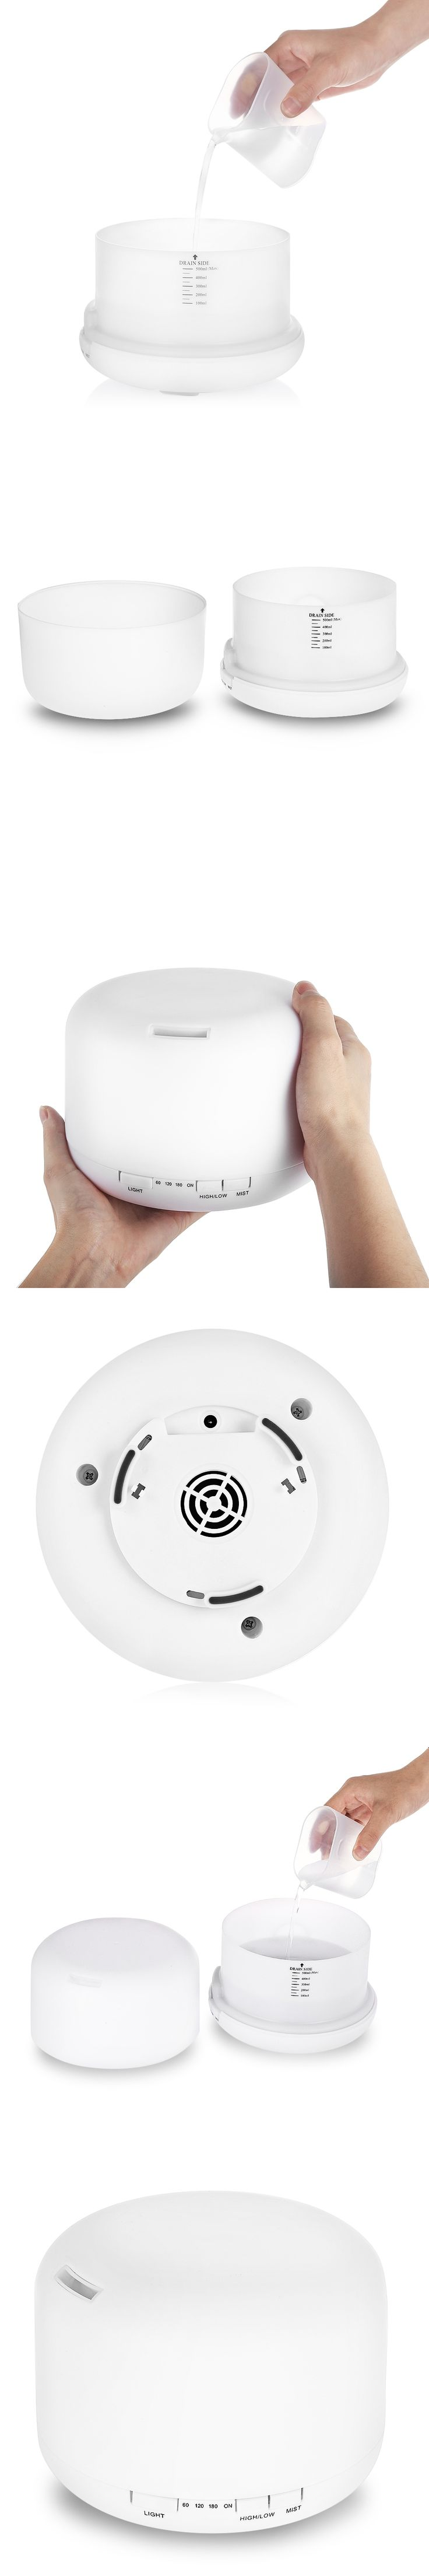 Ultrasonic Humidifier Aromatherapy Diffuser Essential Oil Diffuser Mist Maker With 7 Color LED light Changing